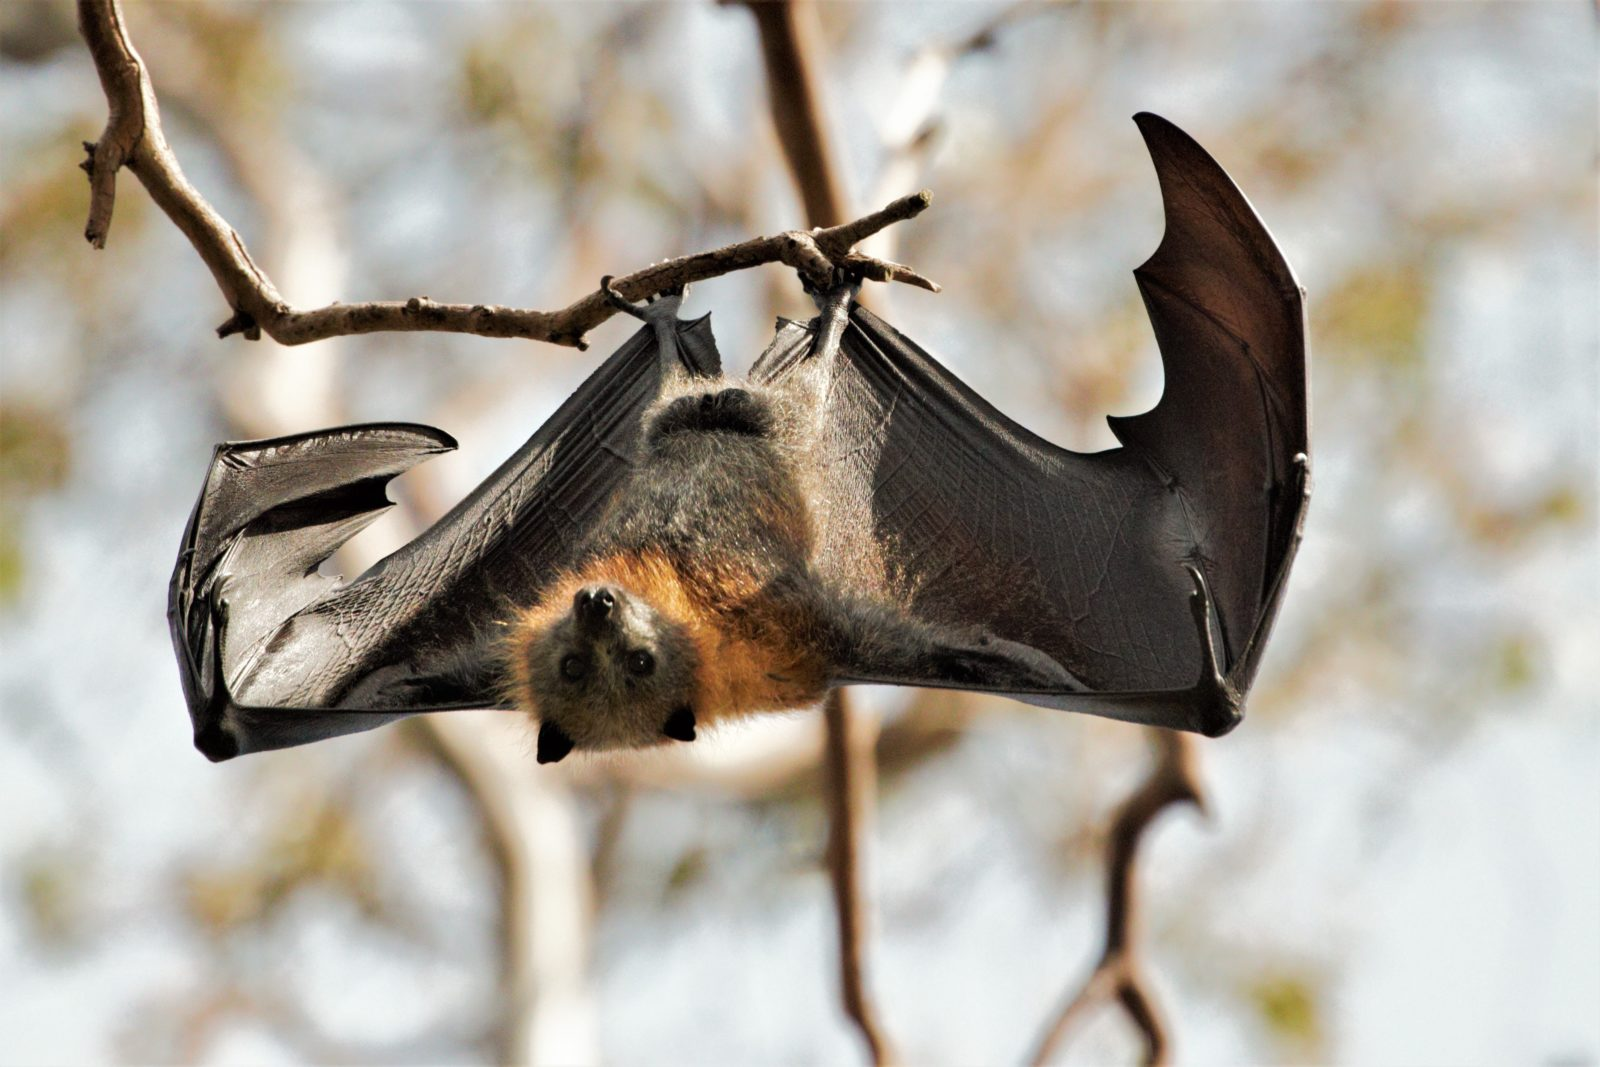 Urban Hiking - Flying Fox hanging upside down in a tree